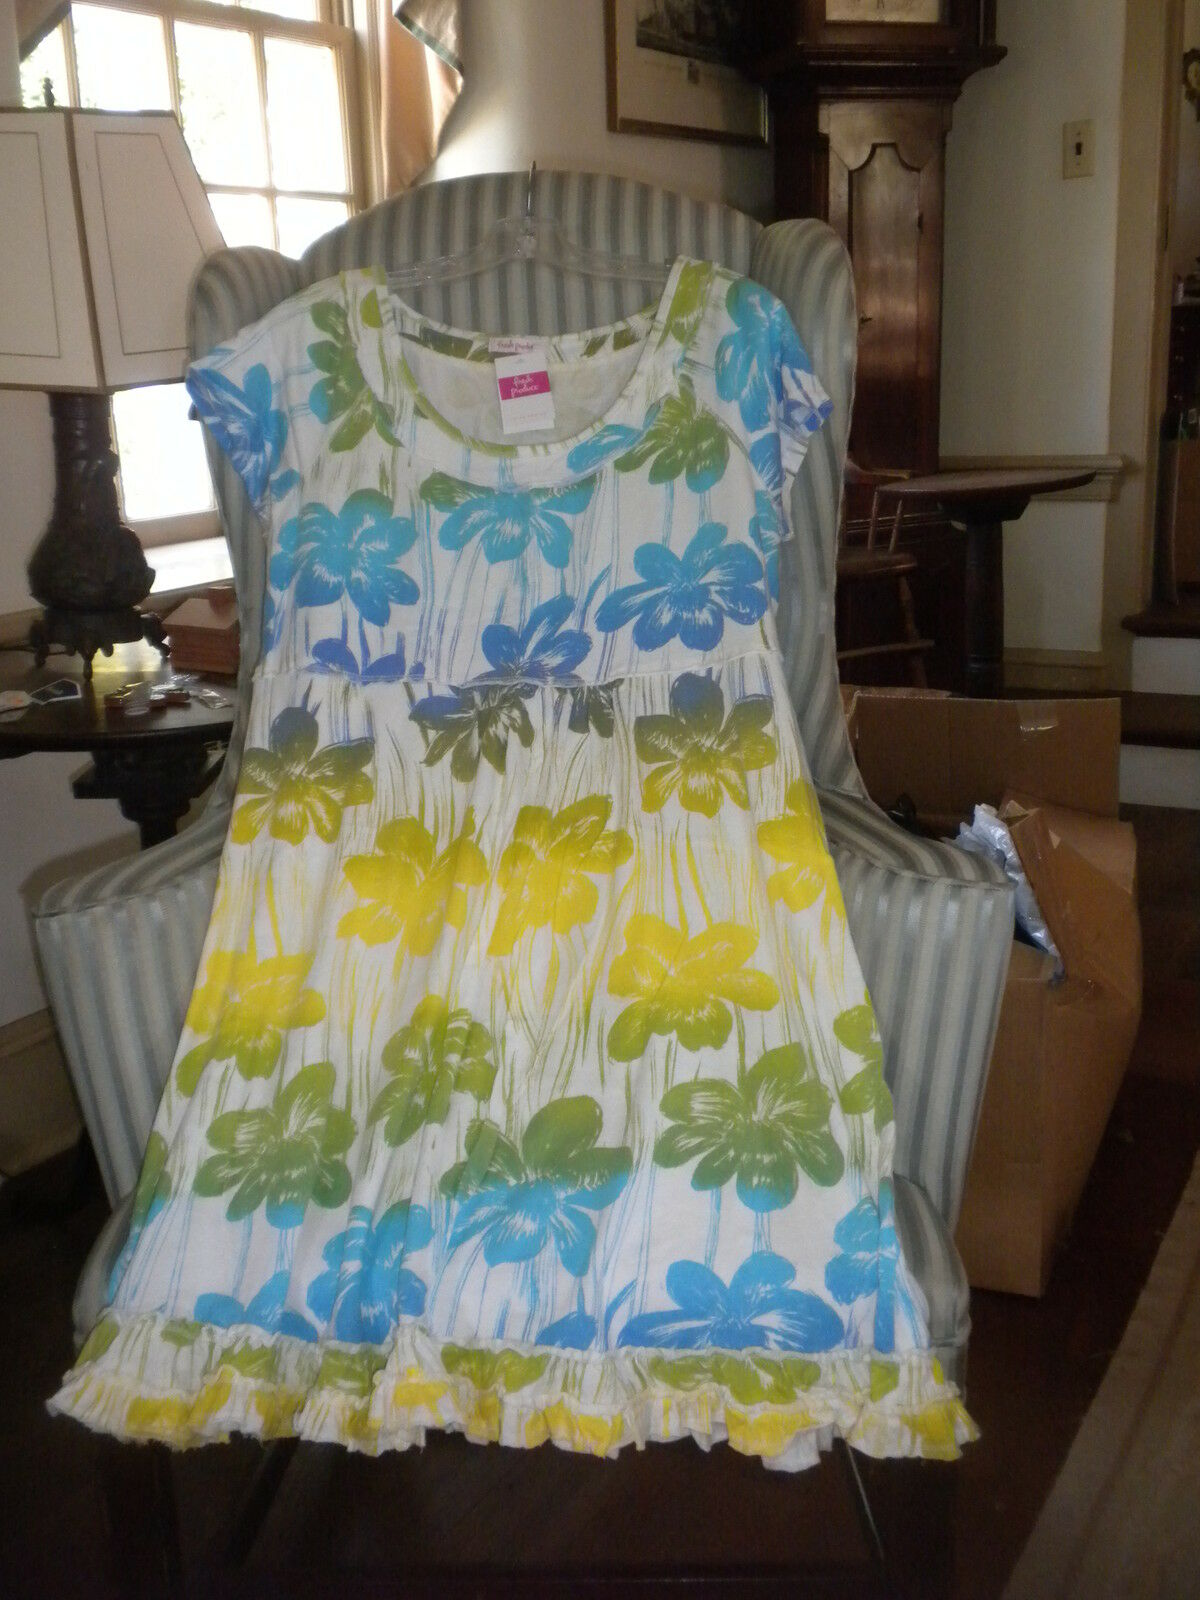 NWT FRESH PRODUCE COTTON  S S S S SUNSHINE STYLE  SPRING FLING  DESIGN DRESS (2X) 15483d